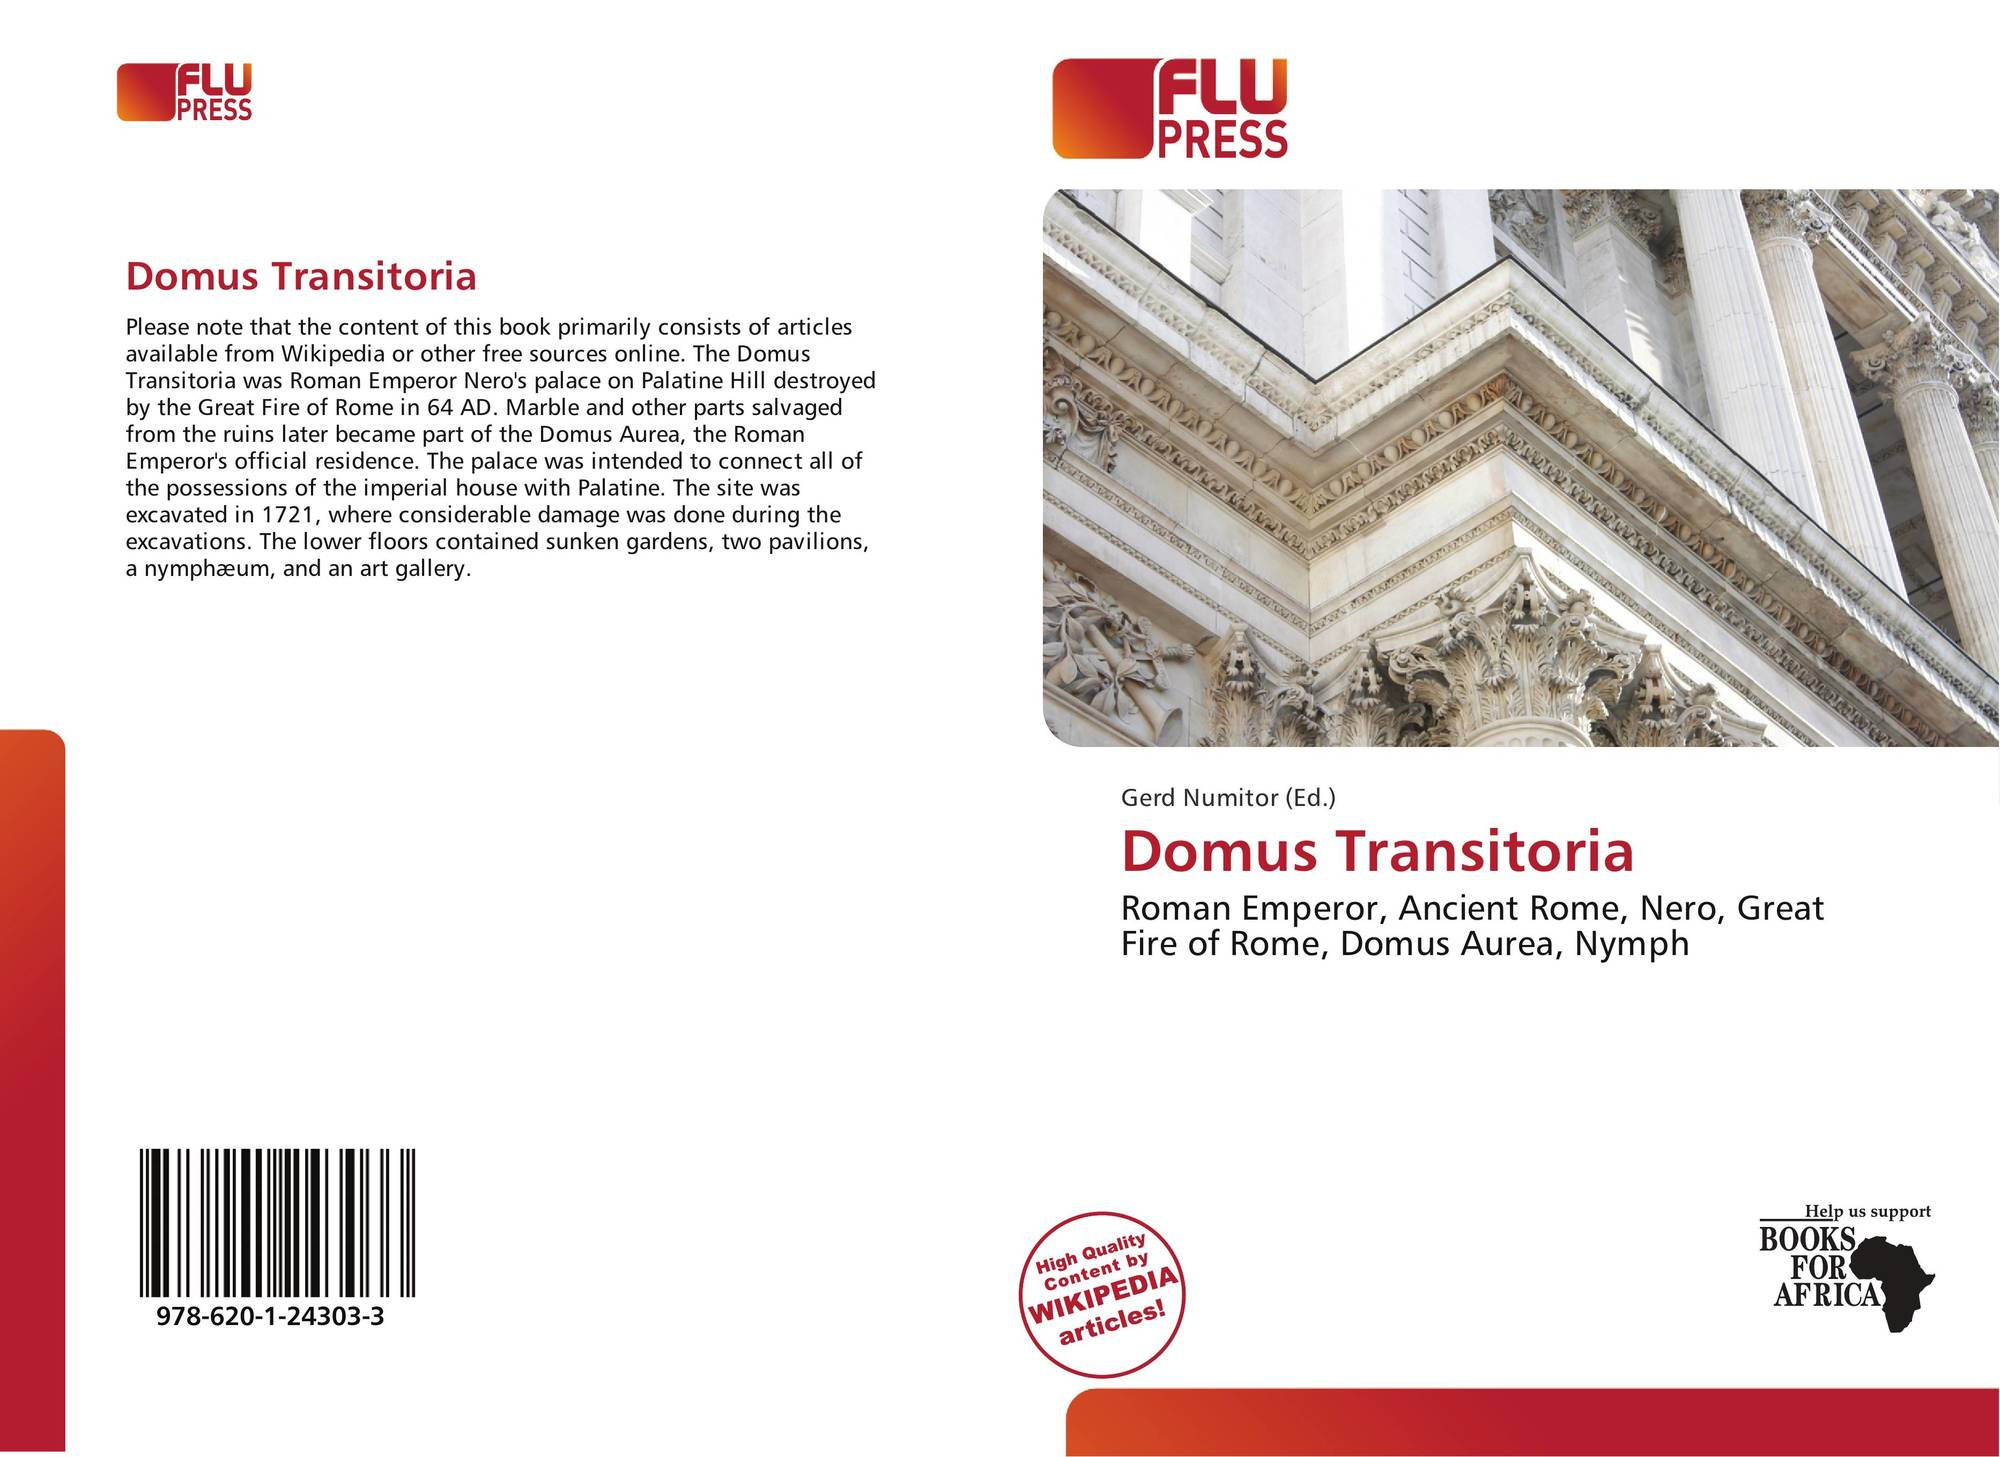 a physical description of the domus transitoria the residence of nero